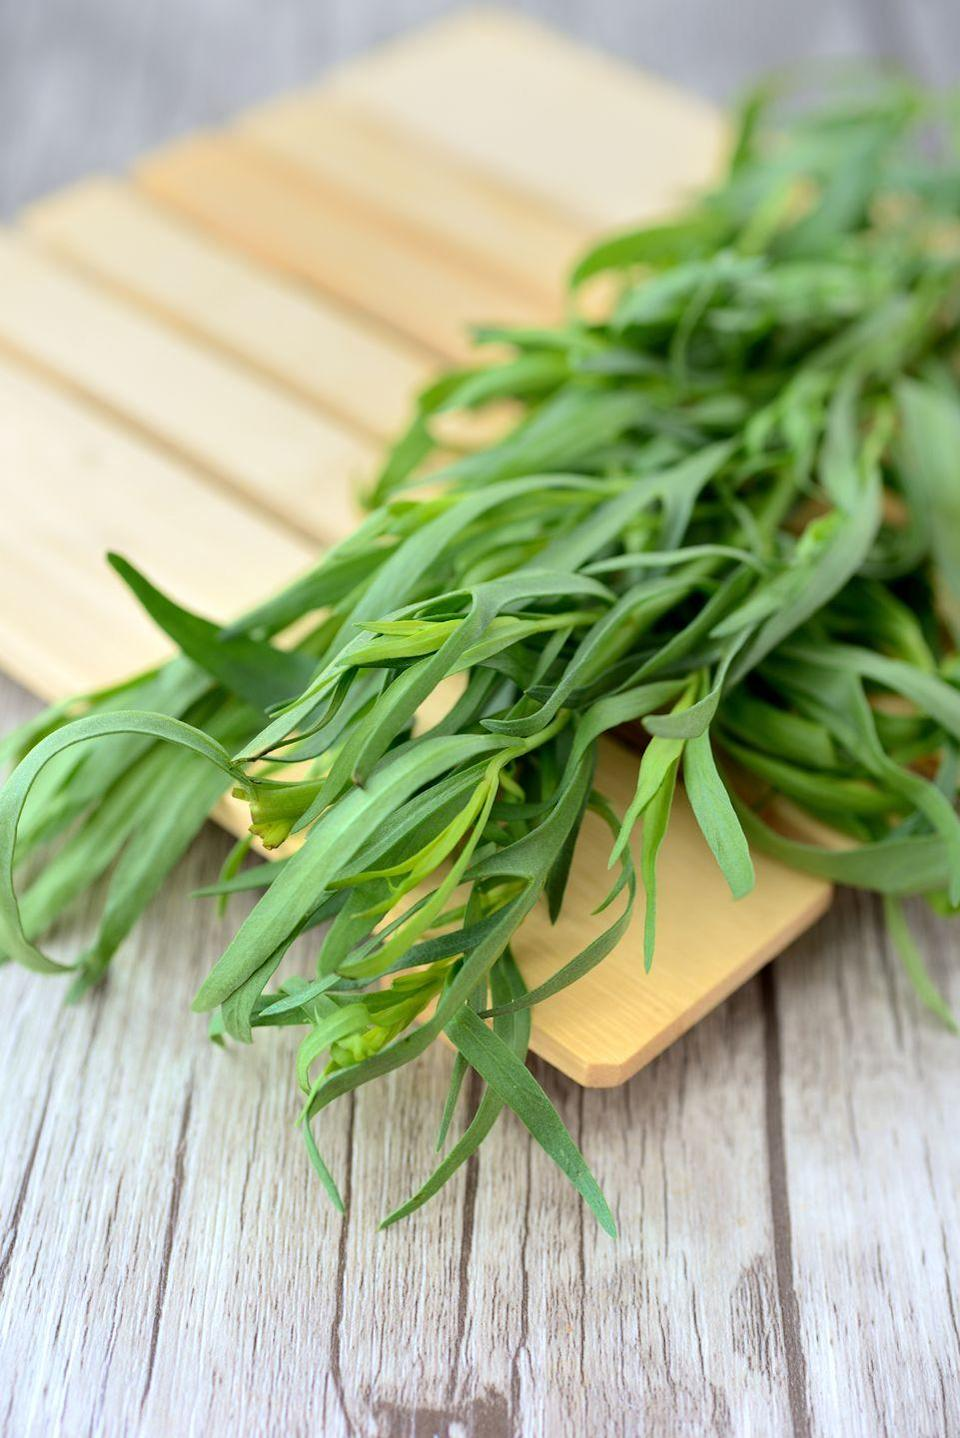 """<p>The delicate blade-like foliage of Russian tarragon can be used dried or fresh in egg, fish, or meat dishes. Its flavor is milder than French tarragon, and is extremely cold-hardy because it originated in Siberia!</p><p><a class=""""link rapid-noclick-resp"""" href=""""https://ferrymorse.com/products/tarragon"""" rel=""""nofollow noopener"""" target=""""_blank"""" data-ylk=""""slk:SHOP NOW"""">SHOP NOW</a></p>"""